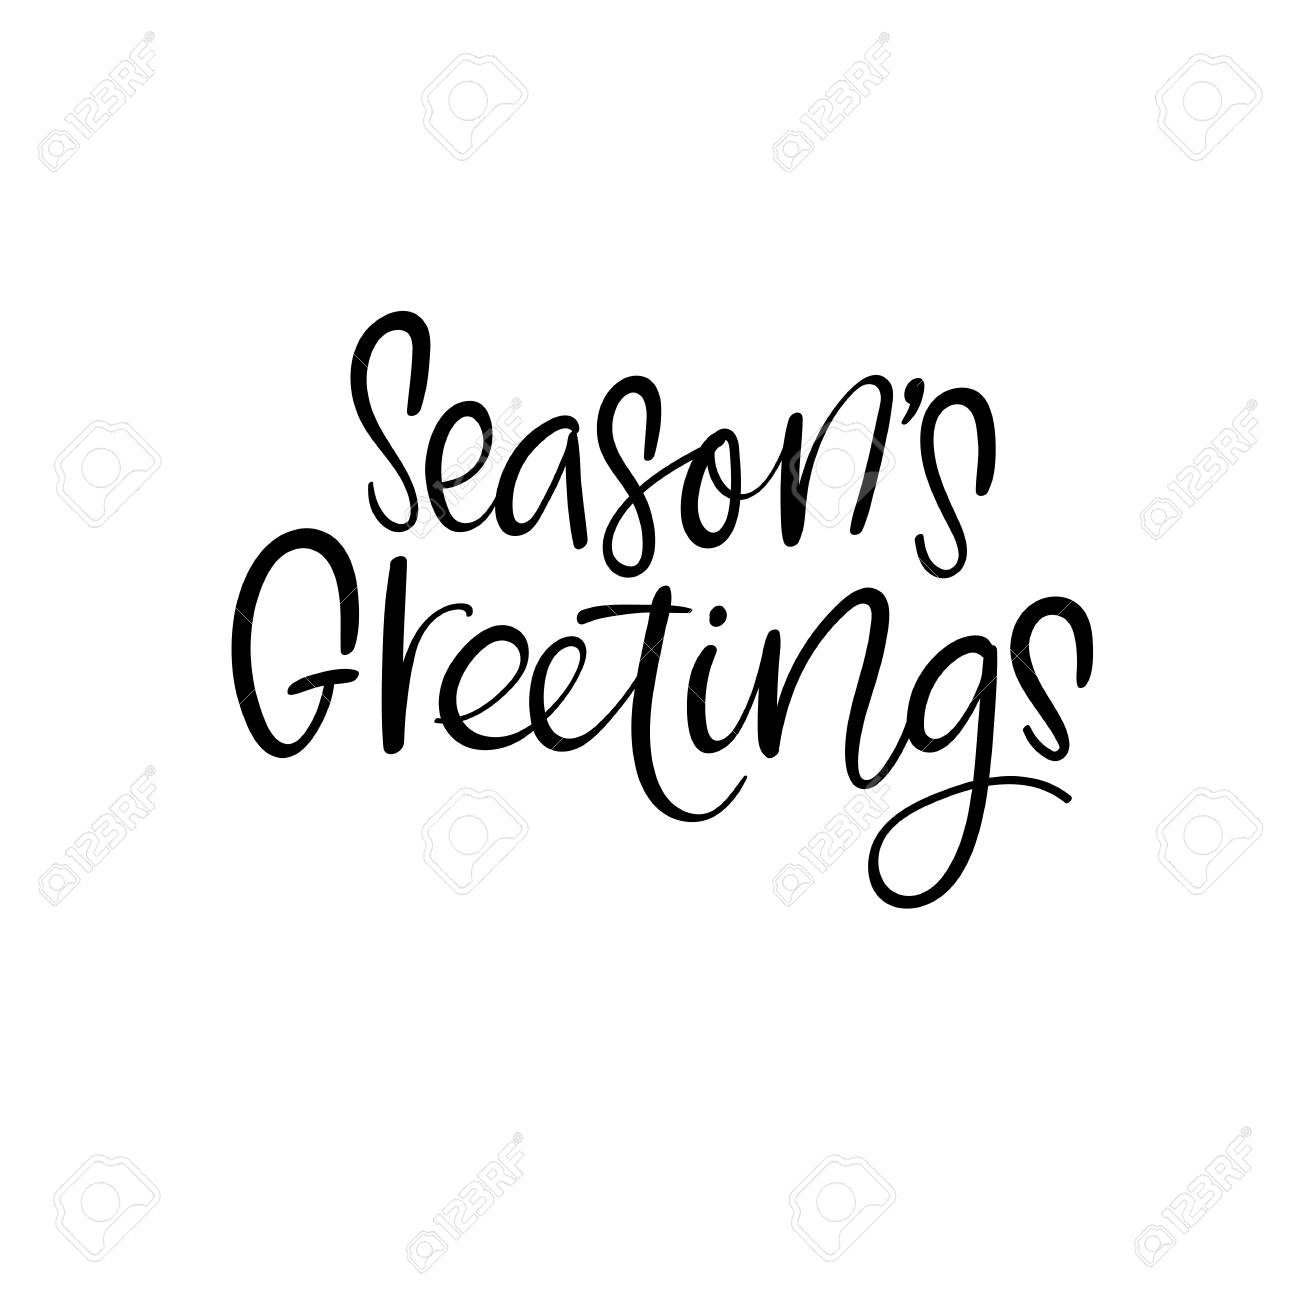 Seasons Greetings Clipart Free Download Clip Art.